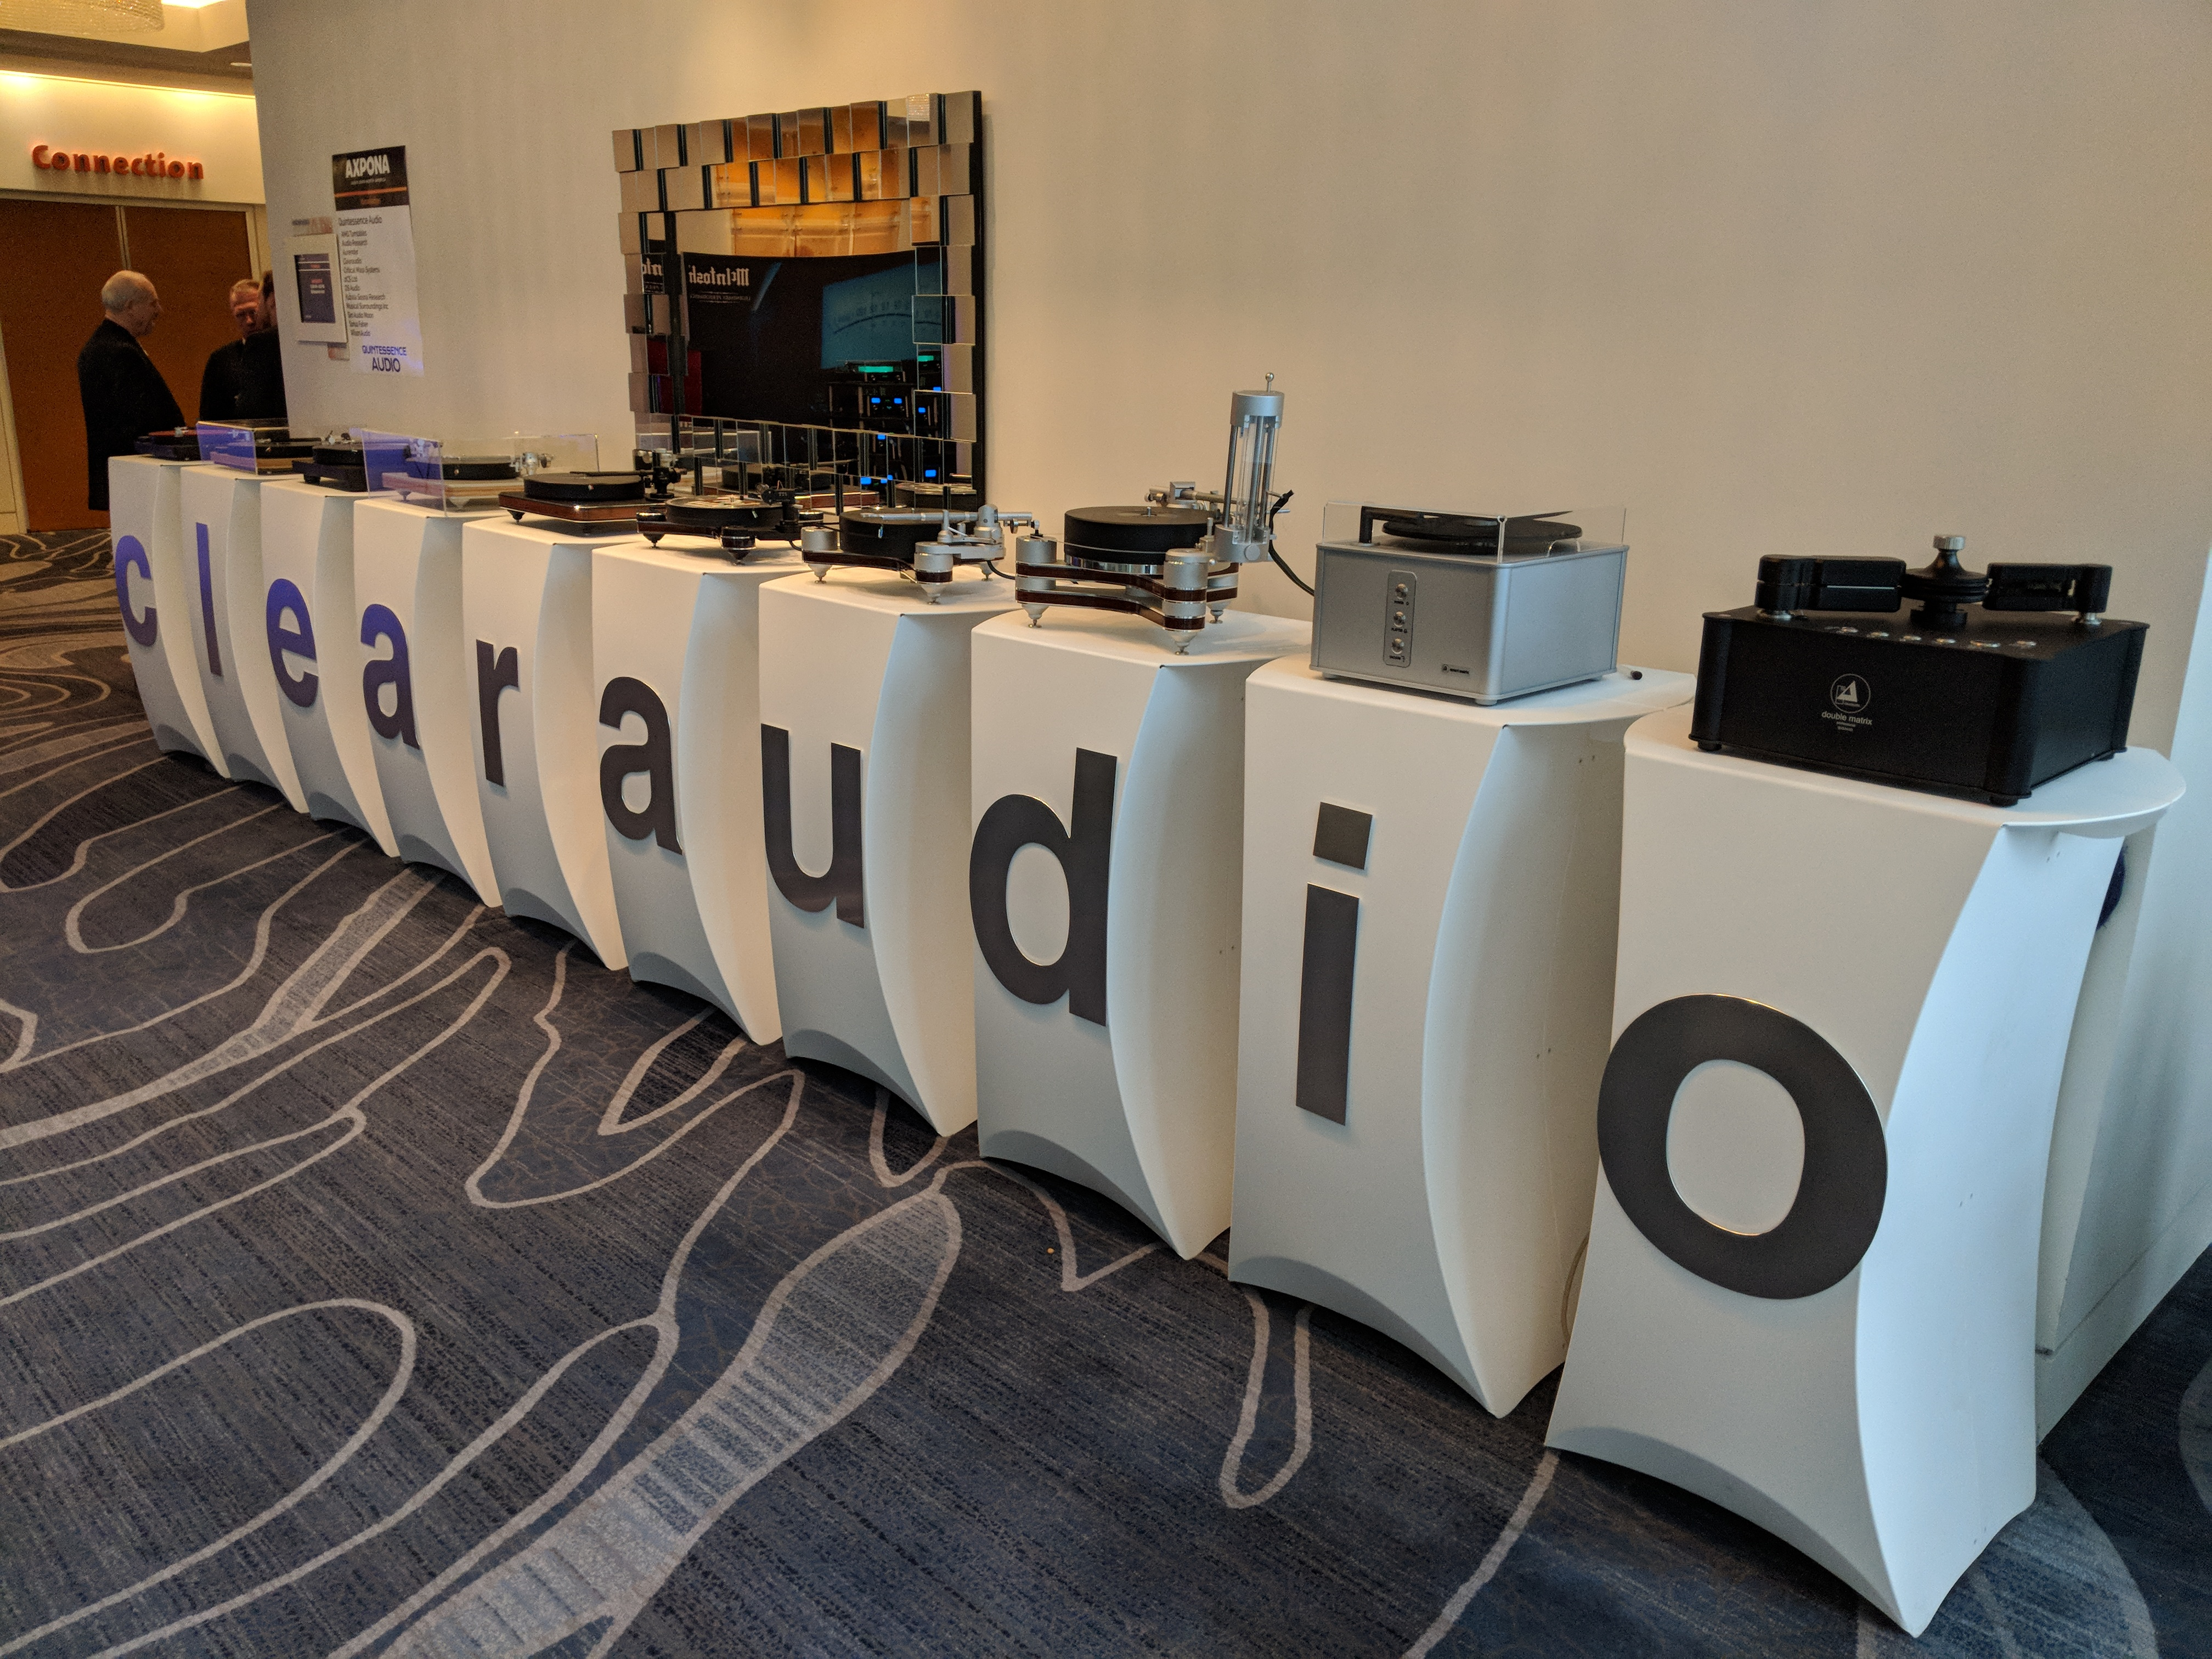 Day One - Whirlwind tour floors 1, 3 and 4 - Audio Federation